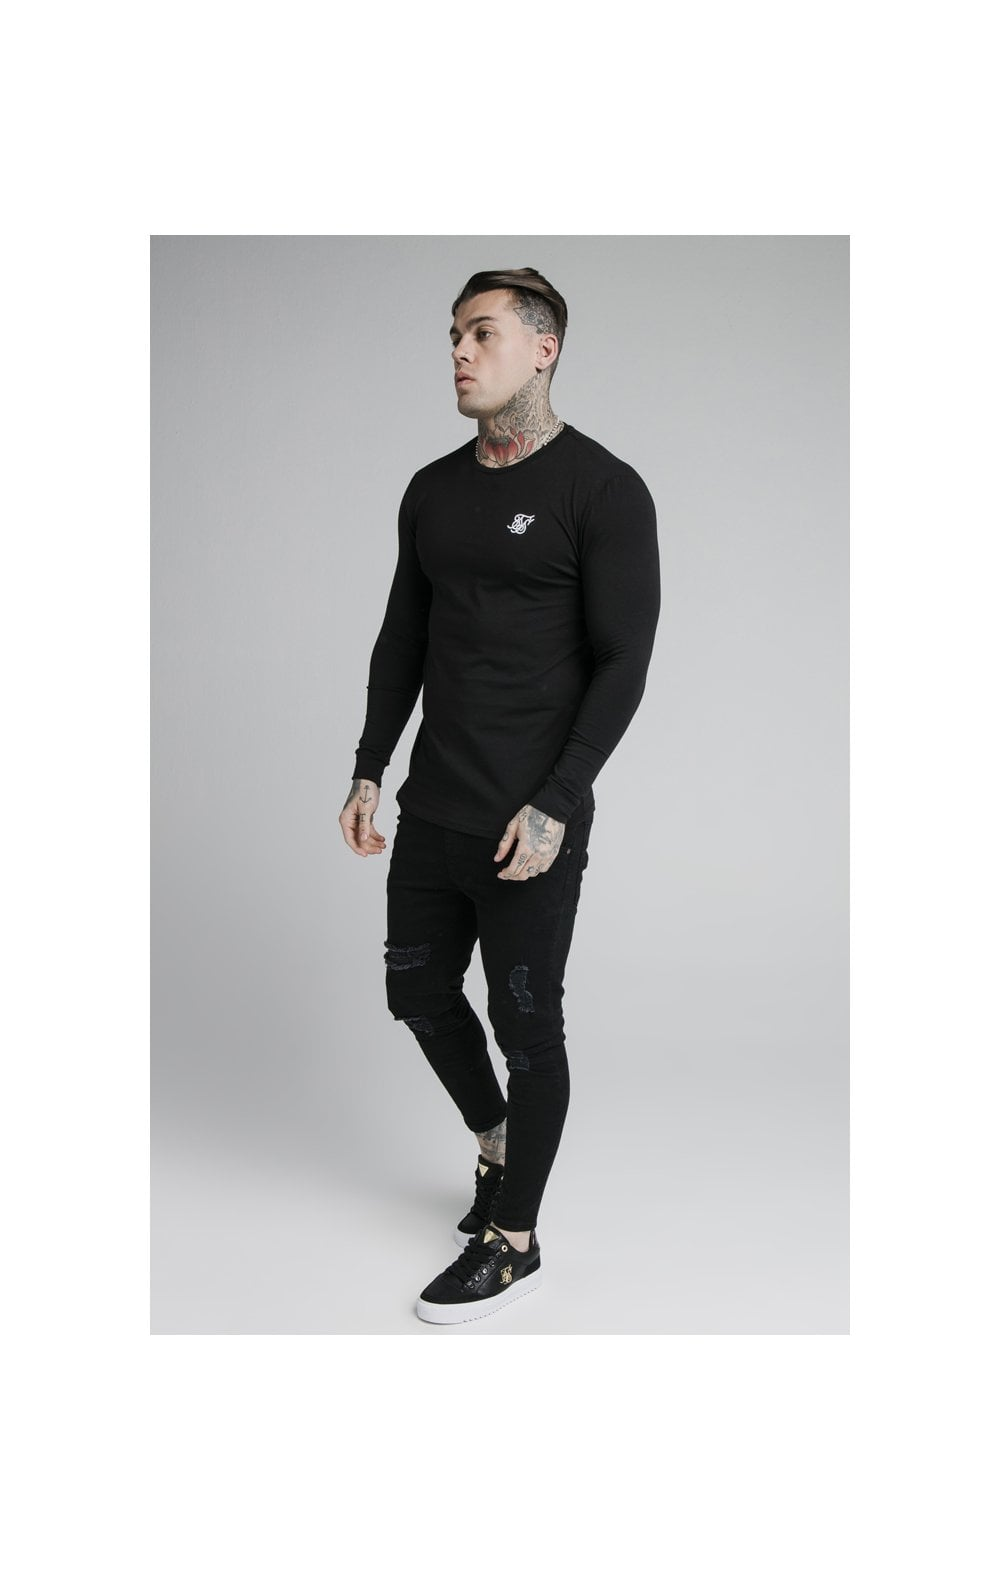 SikSilk L/S Straight Hem Gym Tee – Black (4)